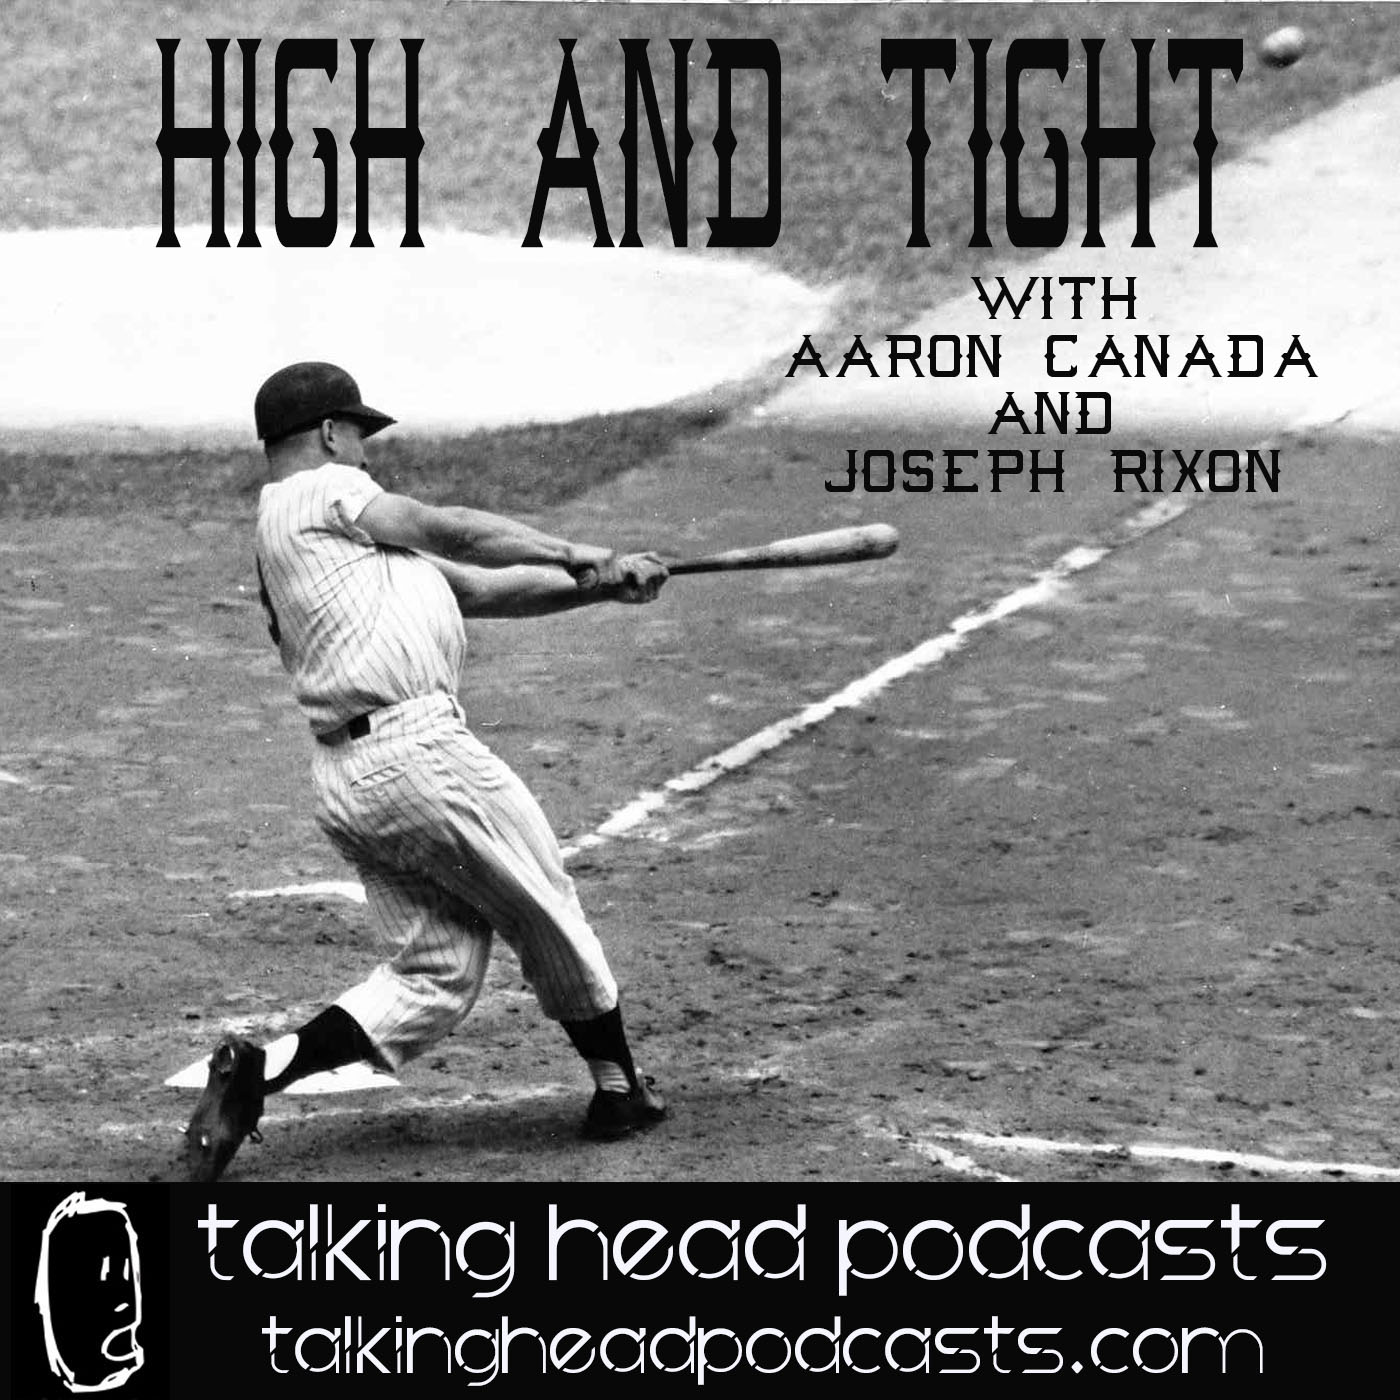 High and Tight Episodes - Talking Head Podcasts